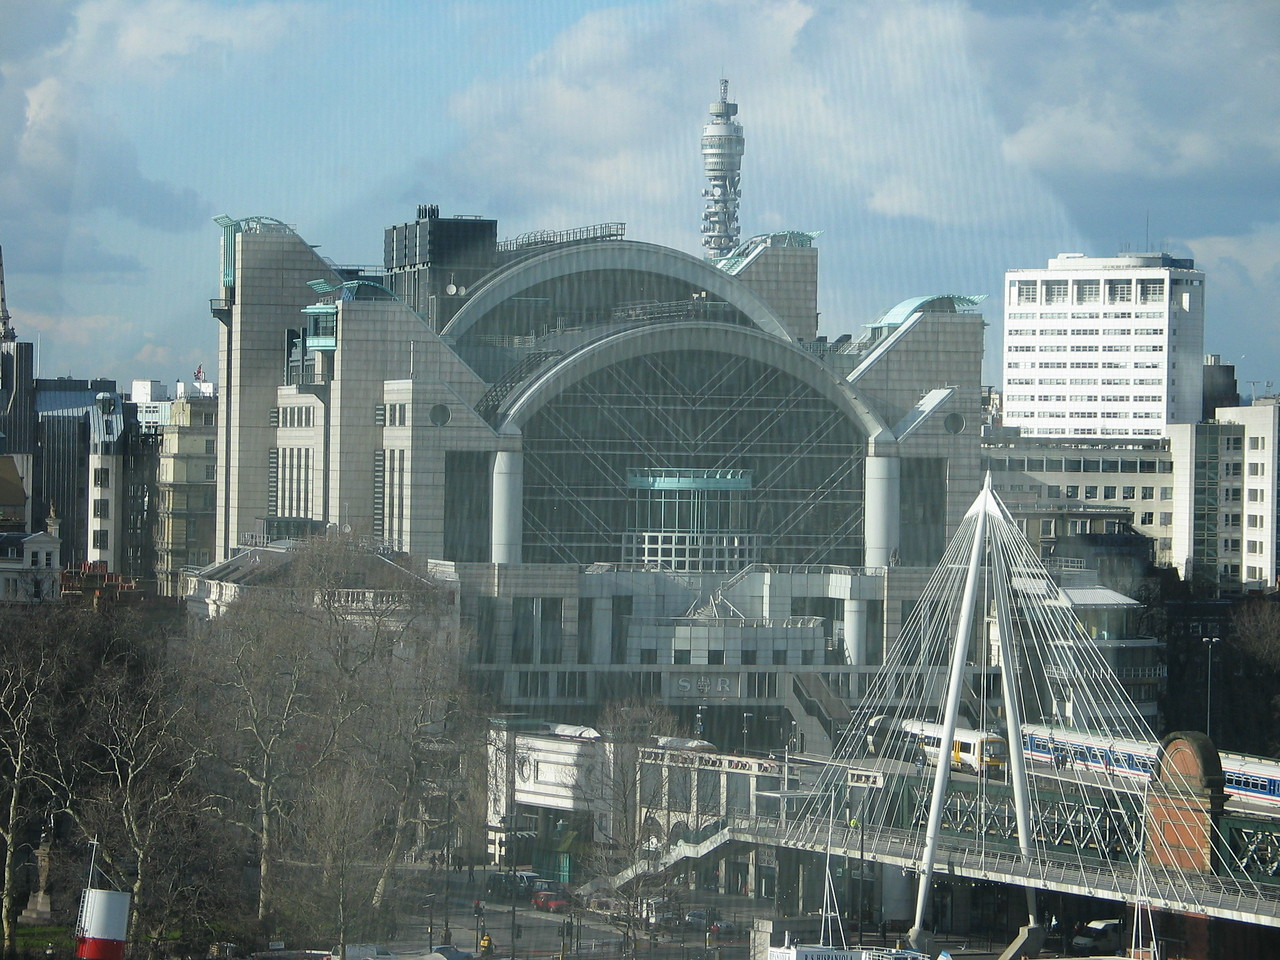 <b>Charing Cross Rail Station - taken from inside the London Eye.</b>